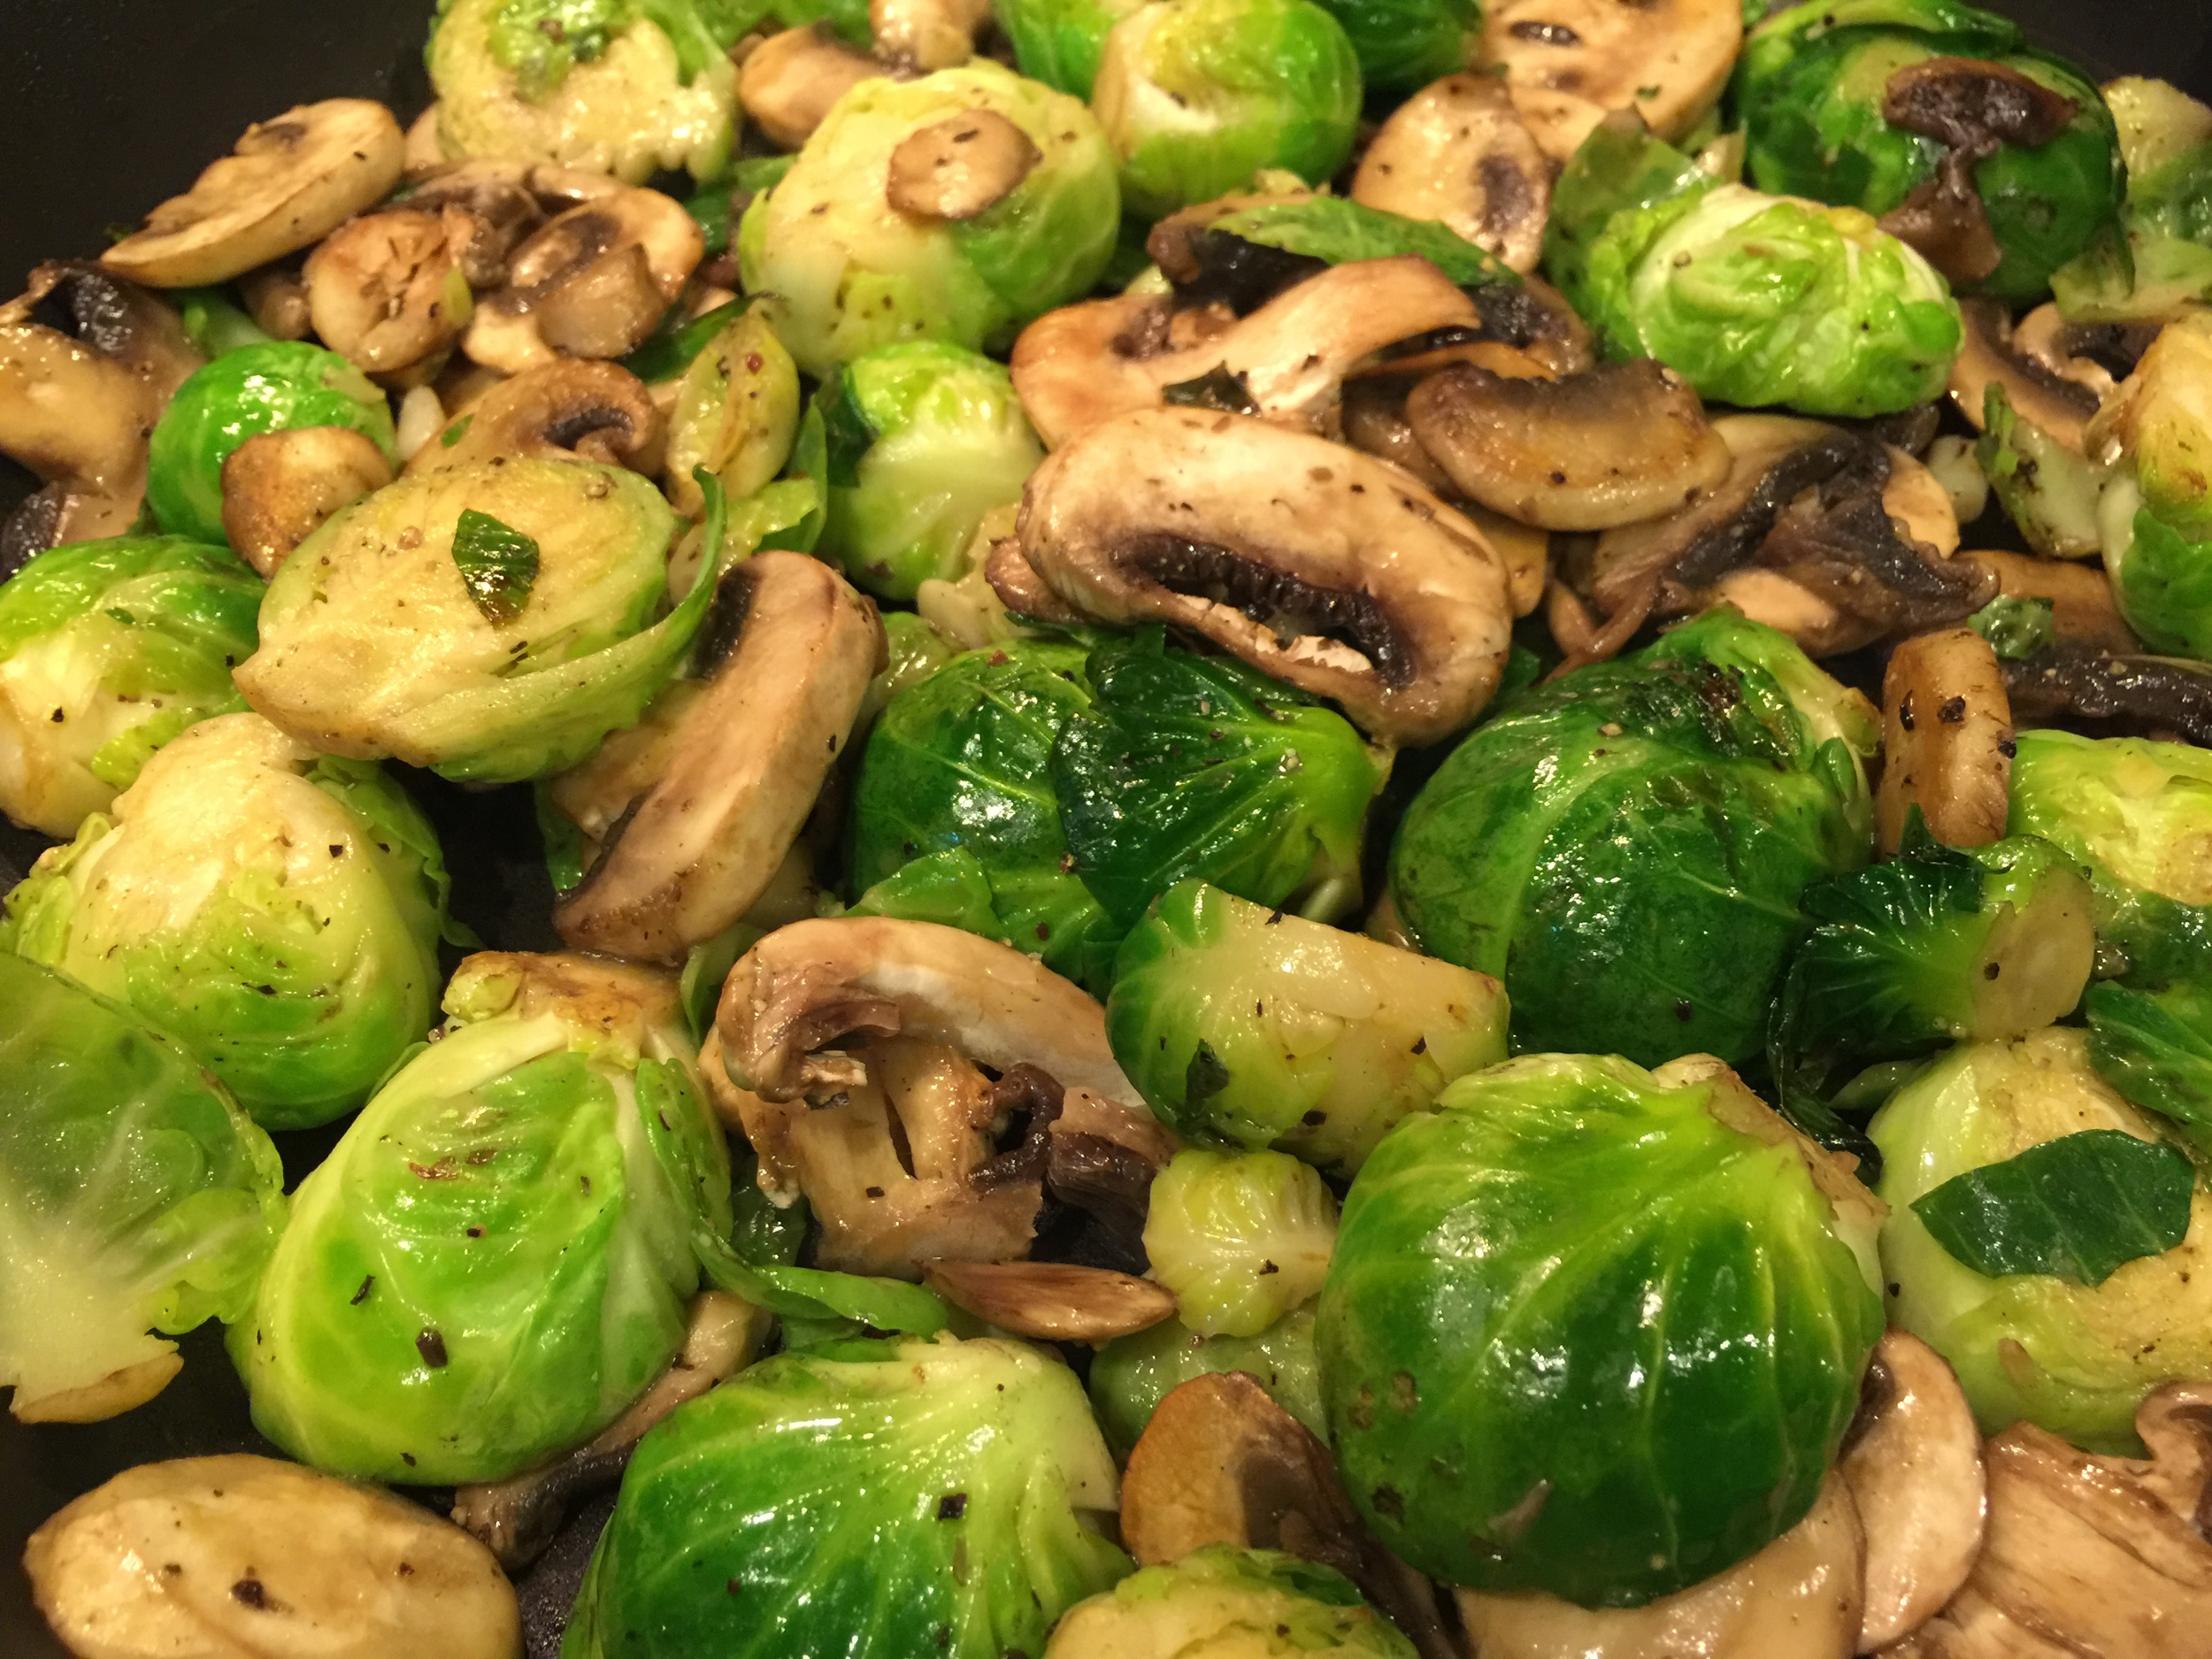 Brussel Sprouts + Mushrooms